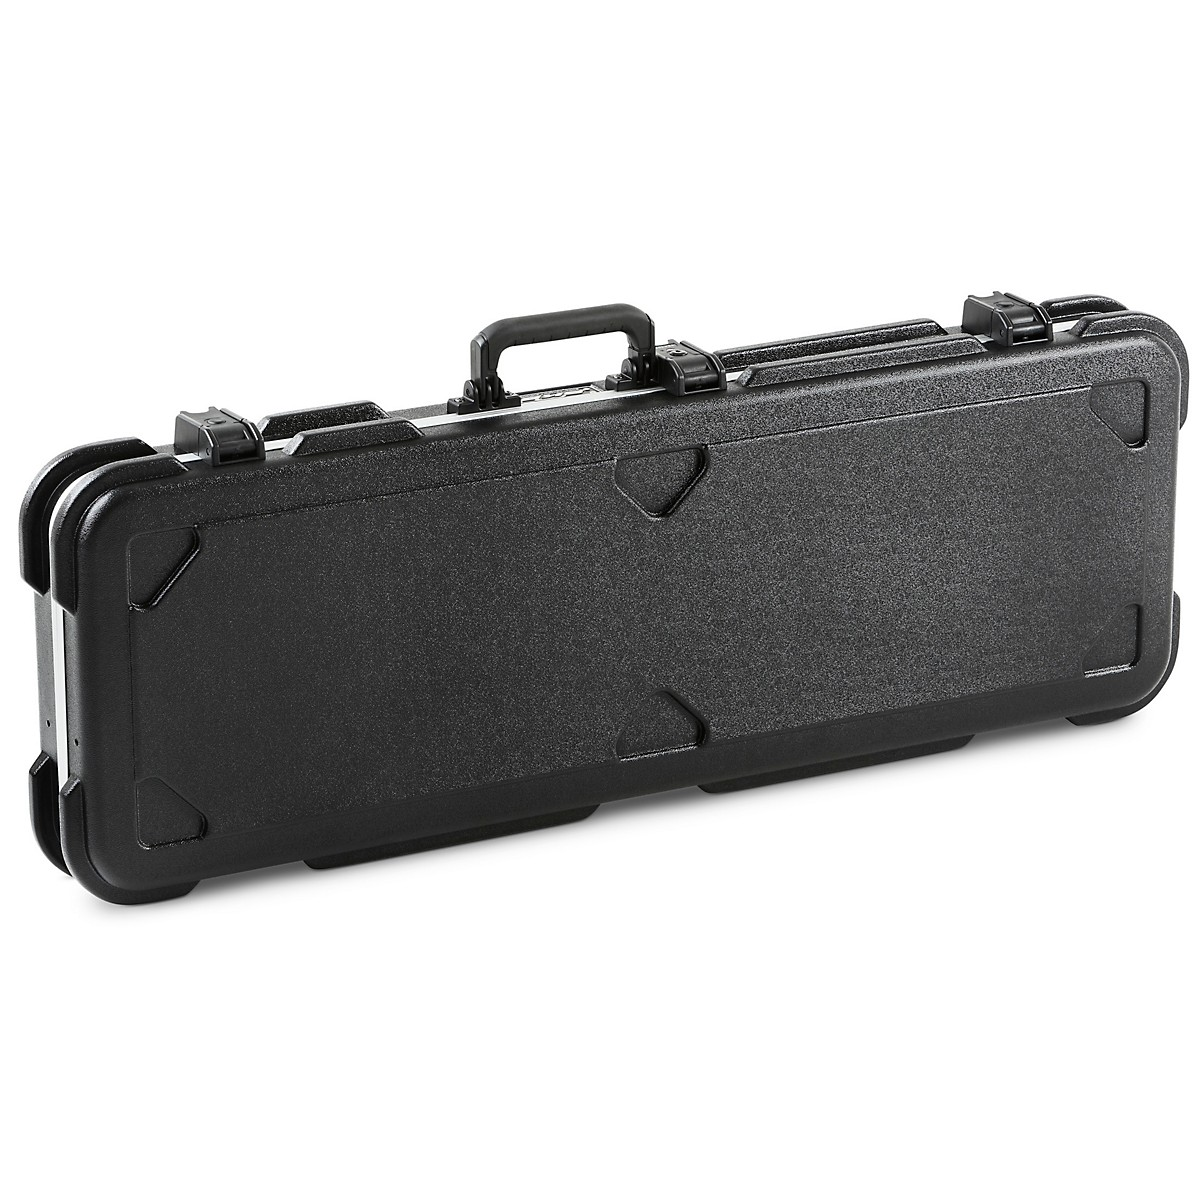 NEW SKB PRO HARD MOLDED ELECTRIC GUITAR FLIGHT CASE TSA For STRAT or TELE